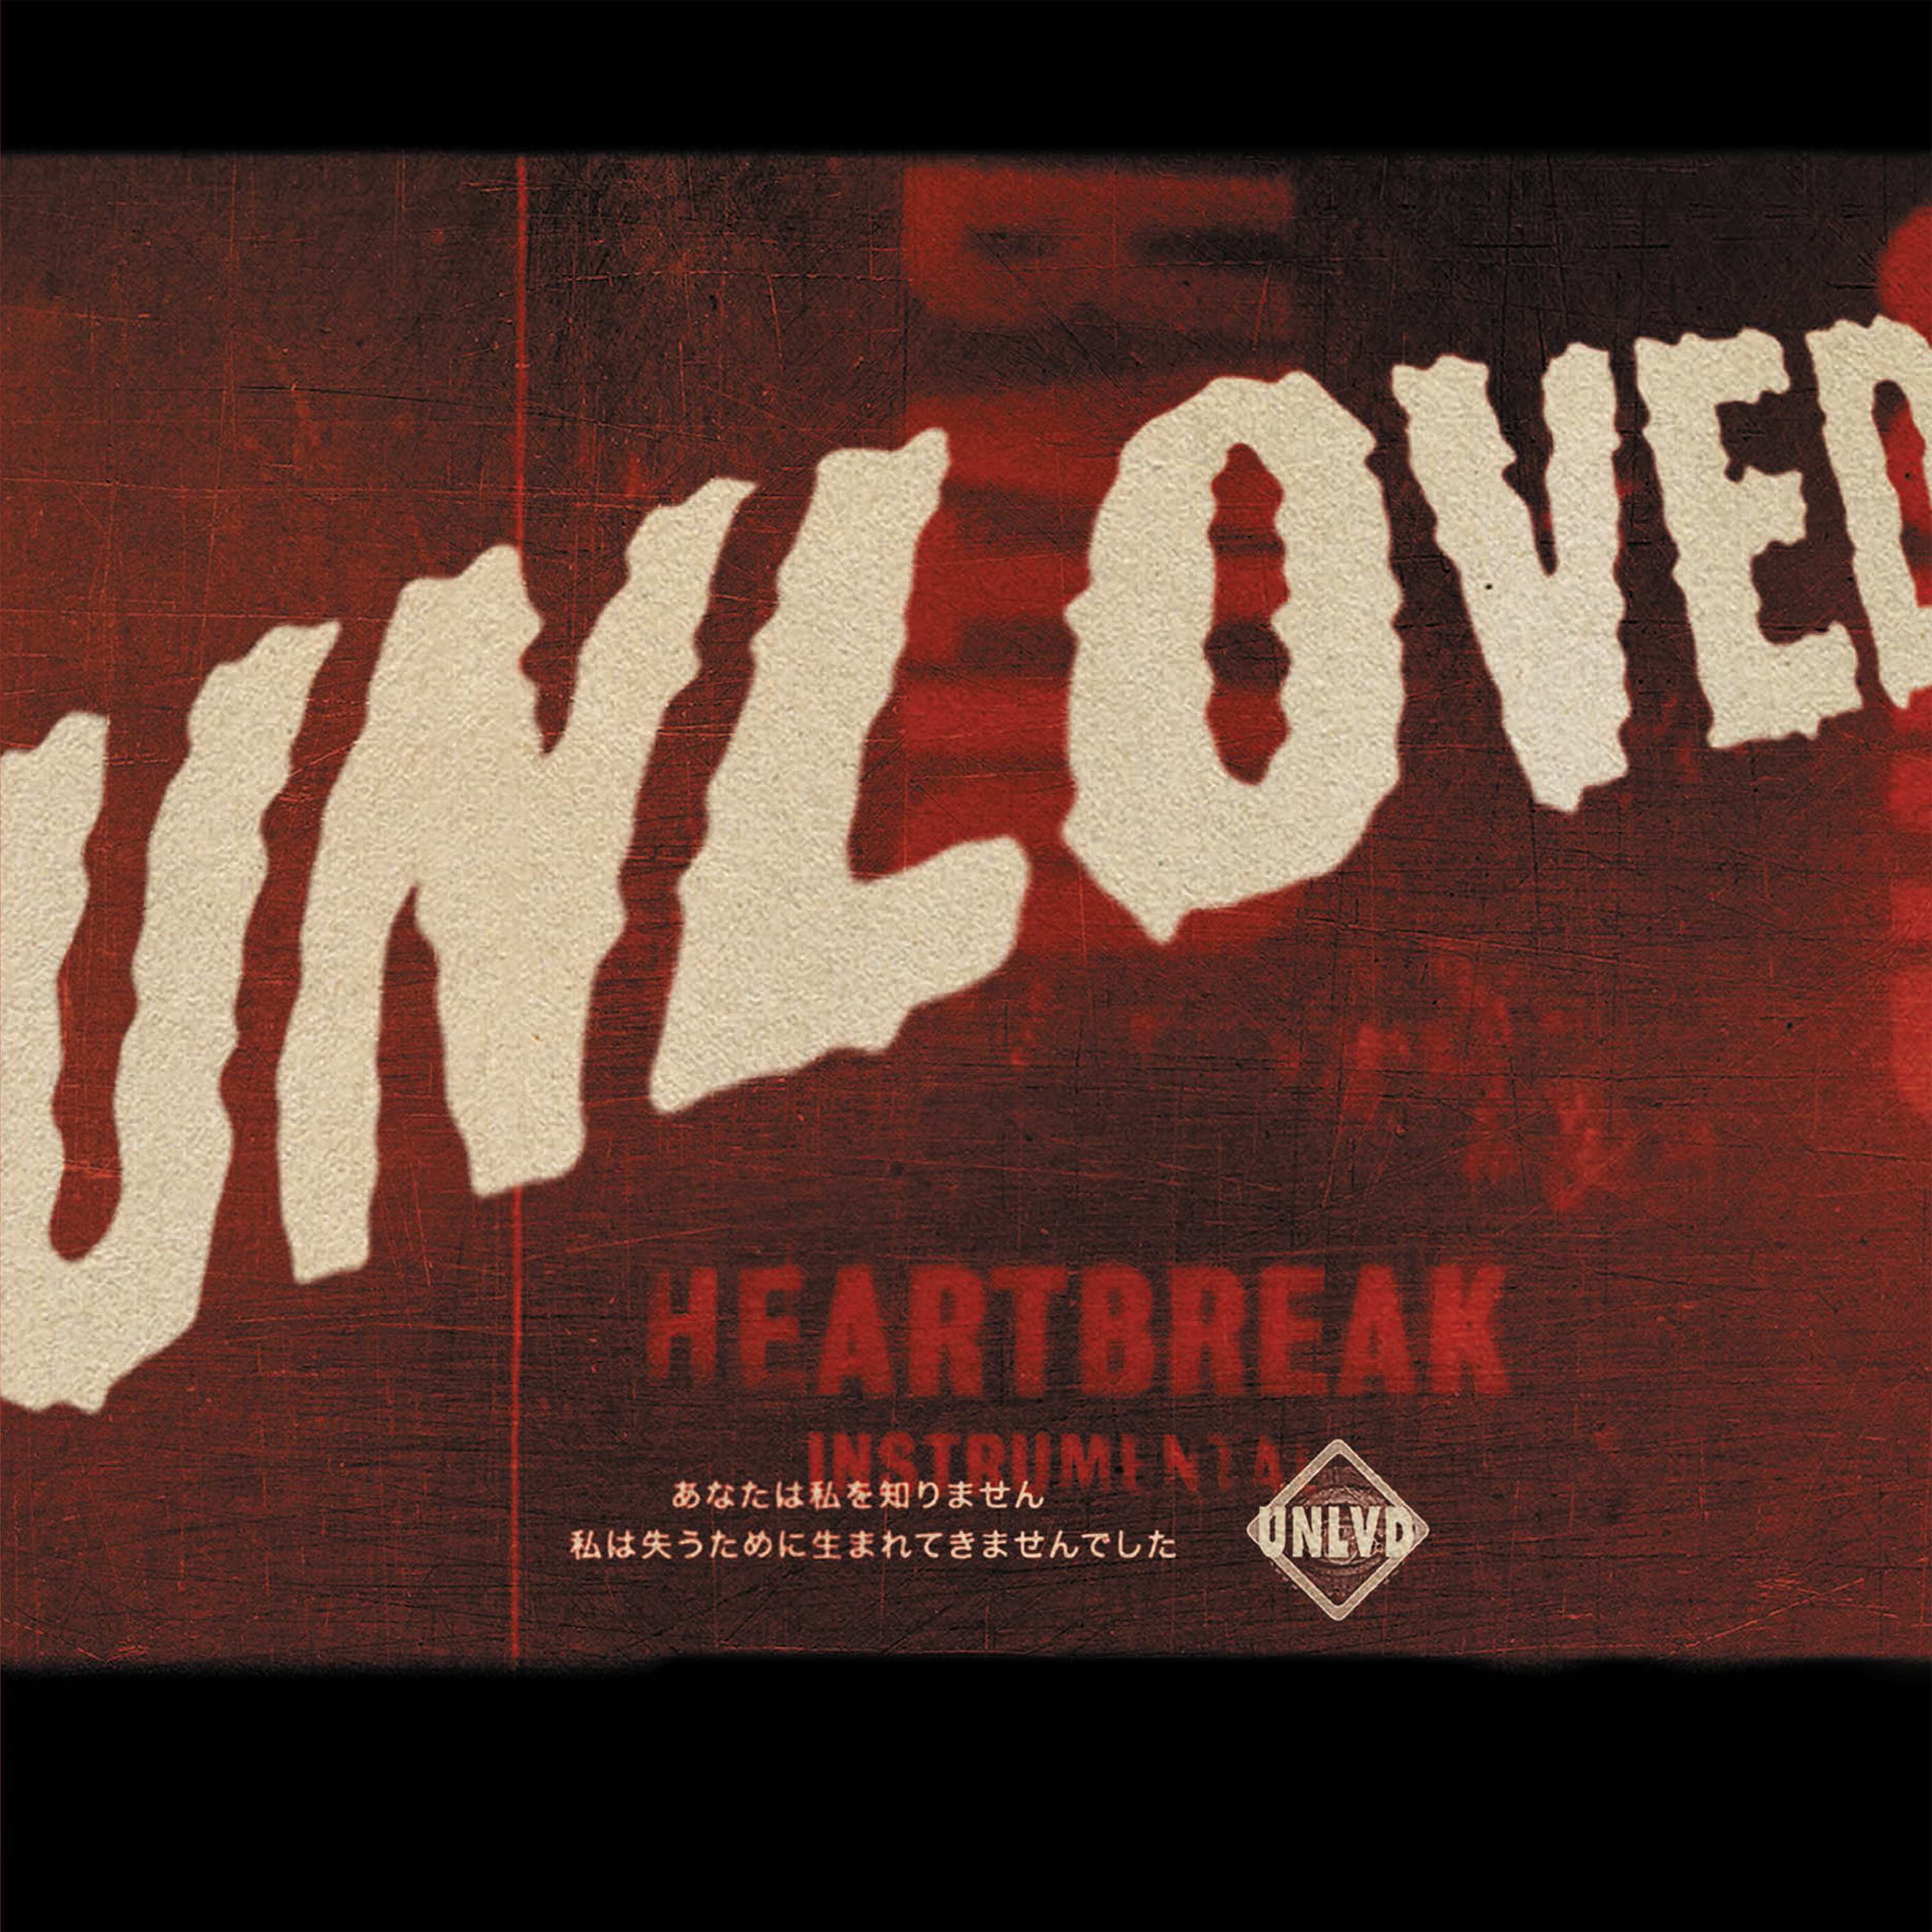 Unloved 'Heartbreak' Instrumentals